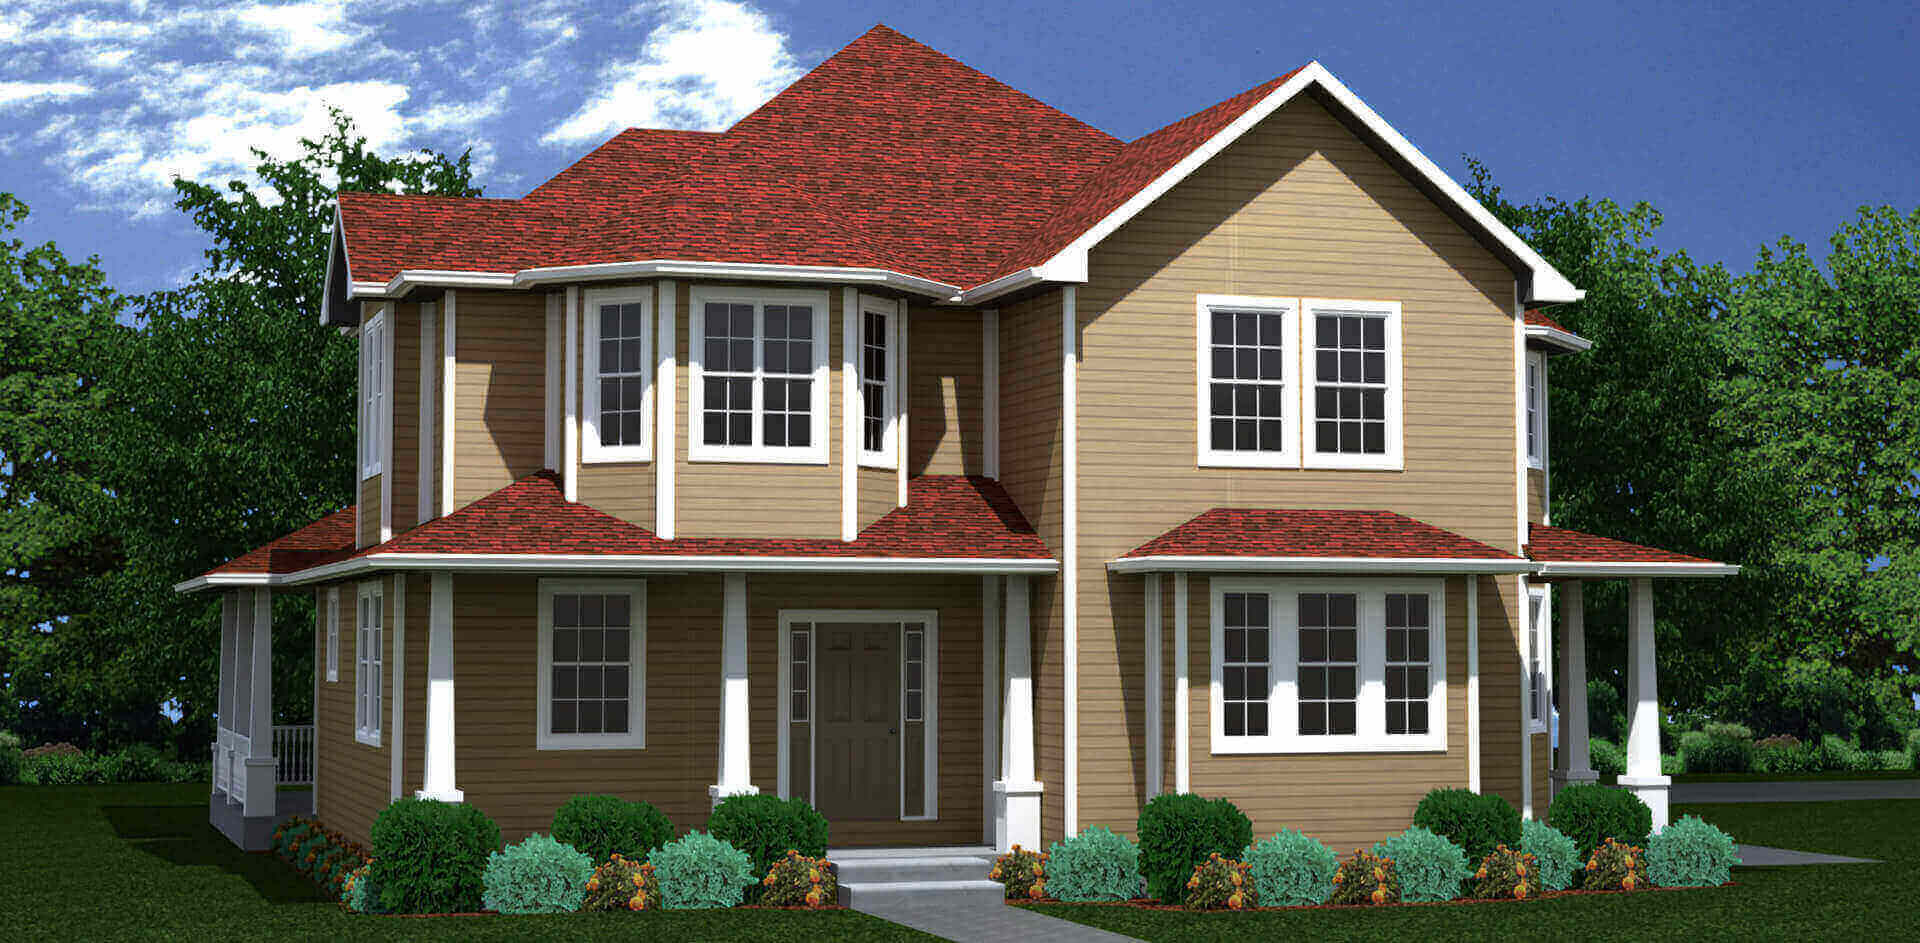 2746 sq.ft. timber mart house 4 bed 4 bath exterior render